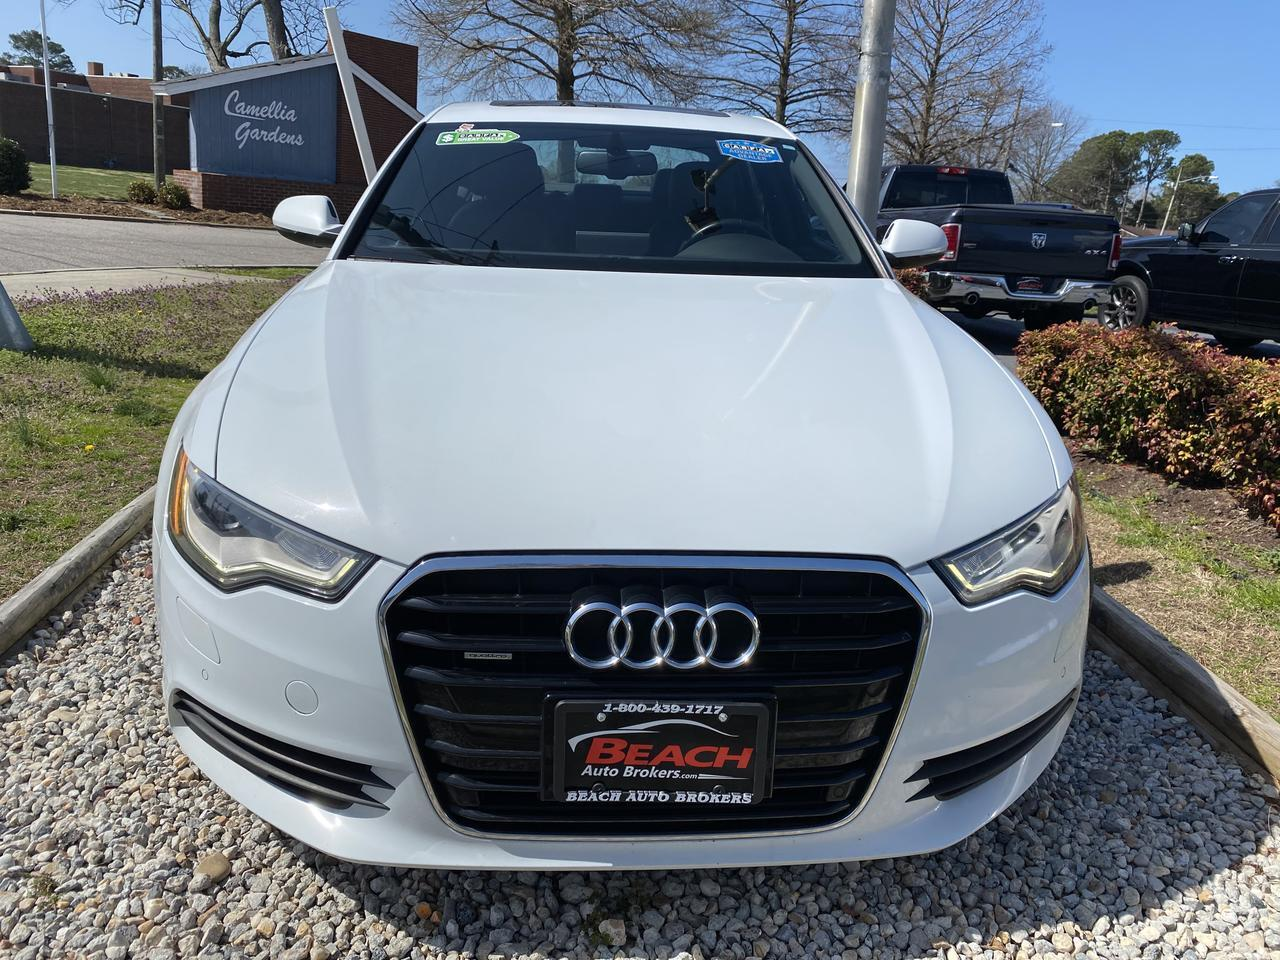 2014 AUDI A6 QUATTRO PREMIUM +, WARRANTY, LEATHER, NAV, HEATED SEATS, BACKUP CAM, PARKING SENSORS, 1 OWNER! Norfolk VA